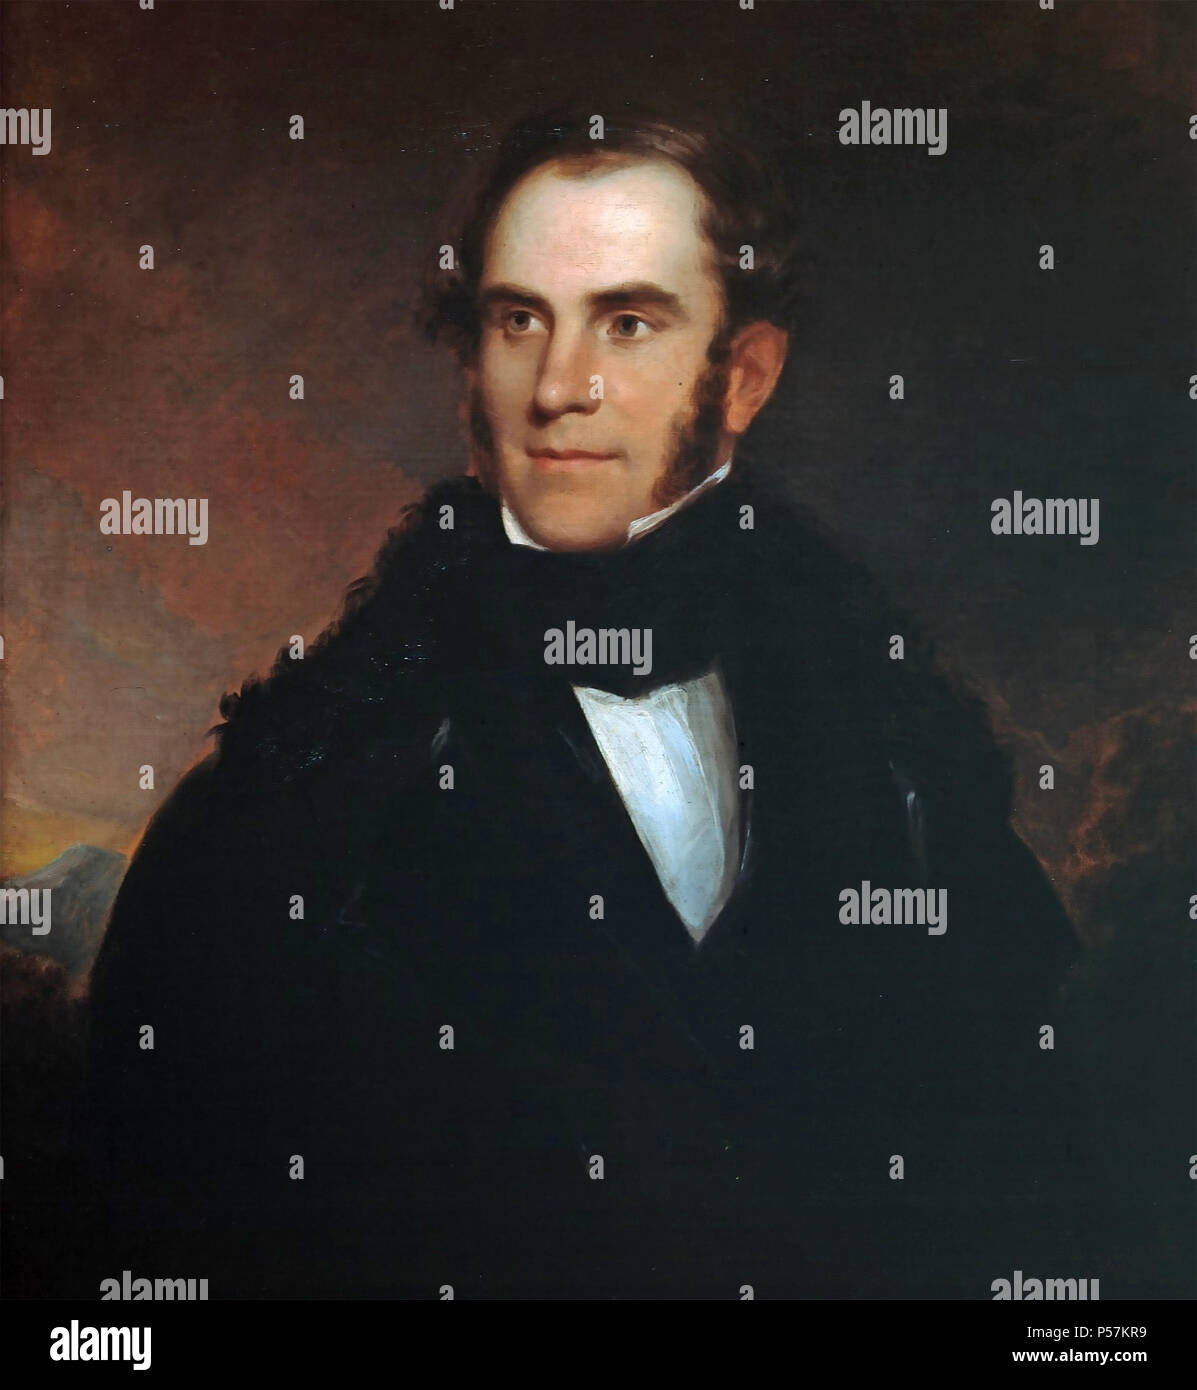 THOMAS COLE (1801-1848) English-born American painter in 1837 potrait by Asher Durand - Stock Image